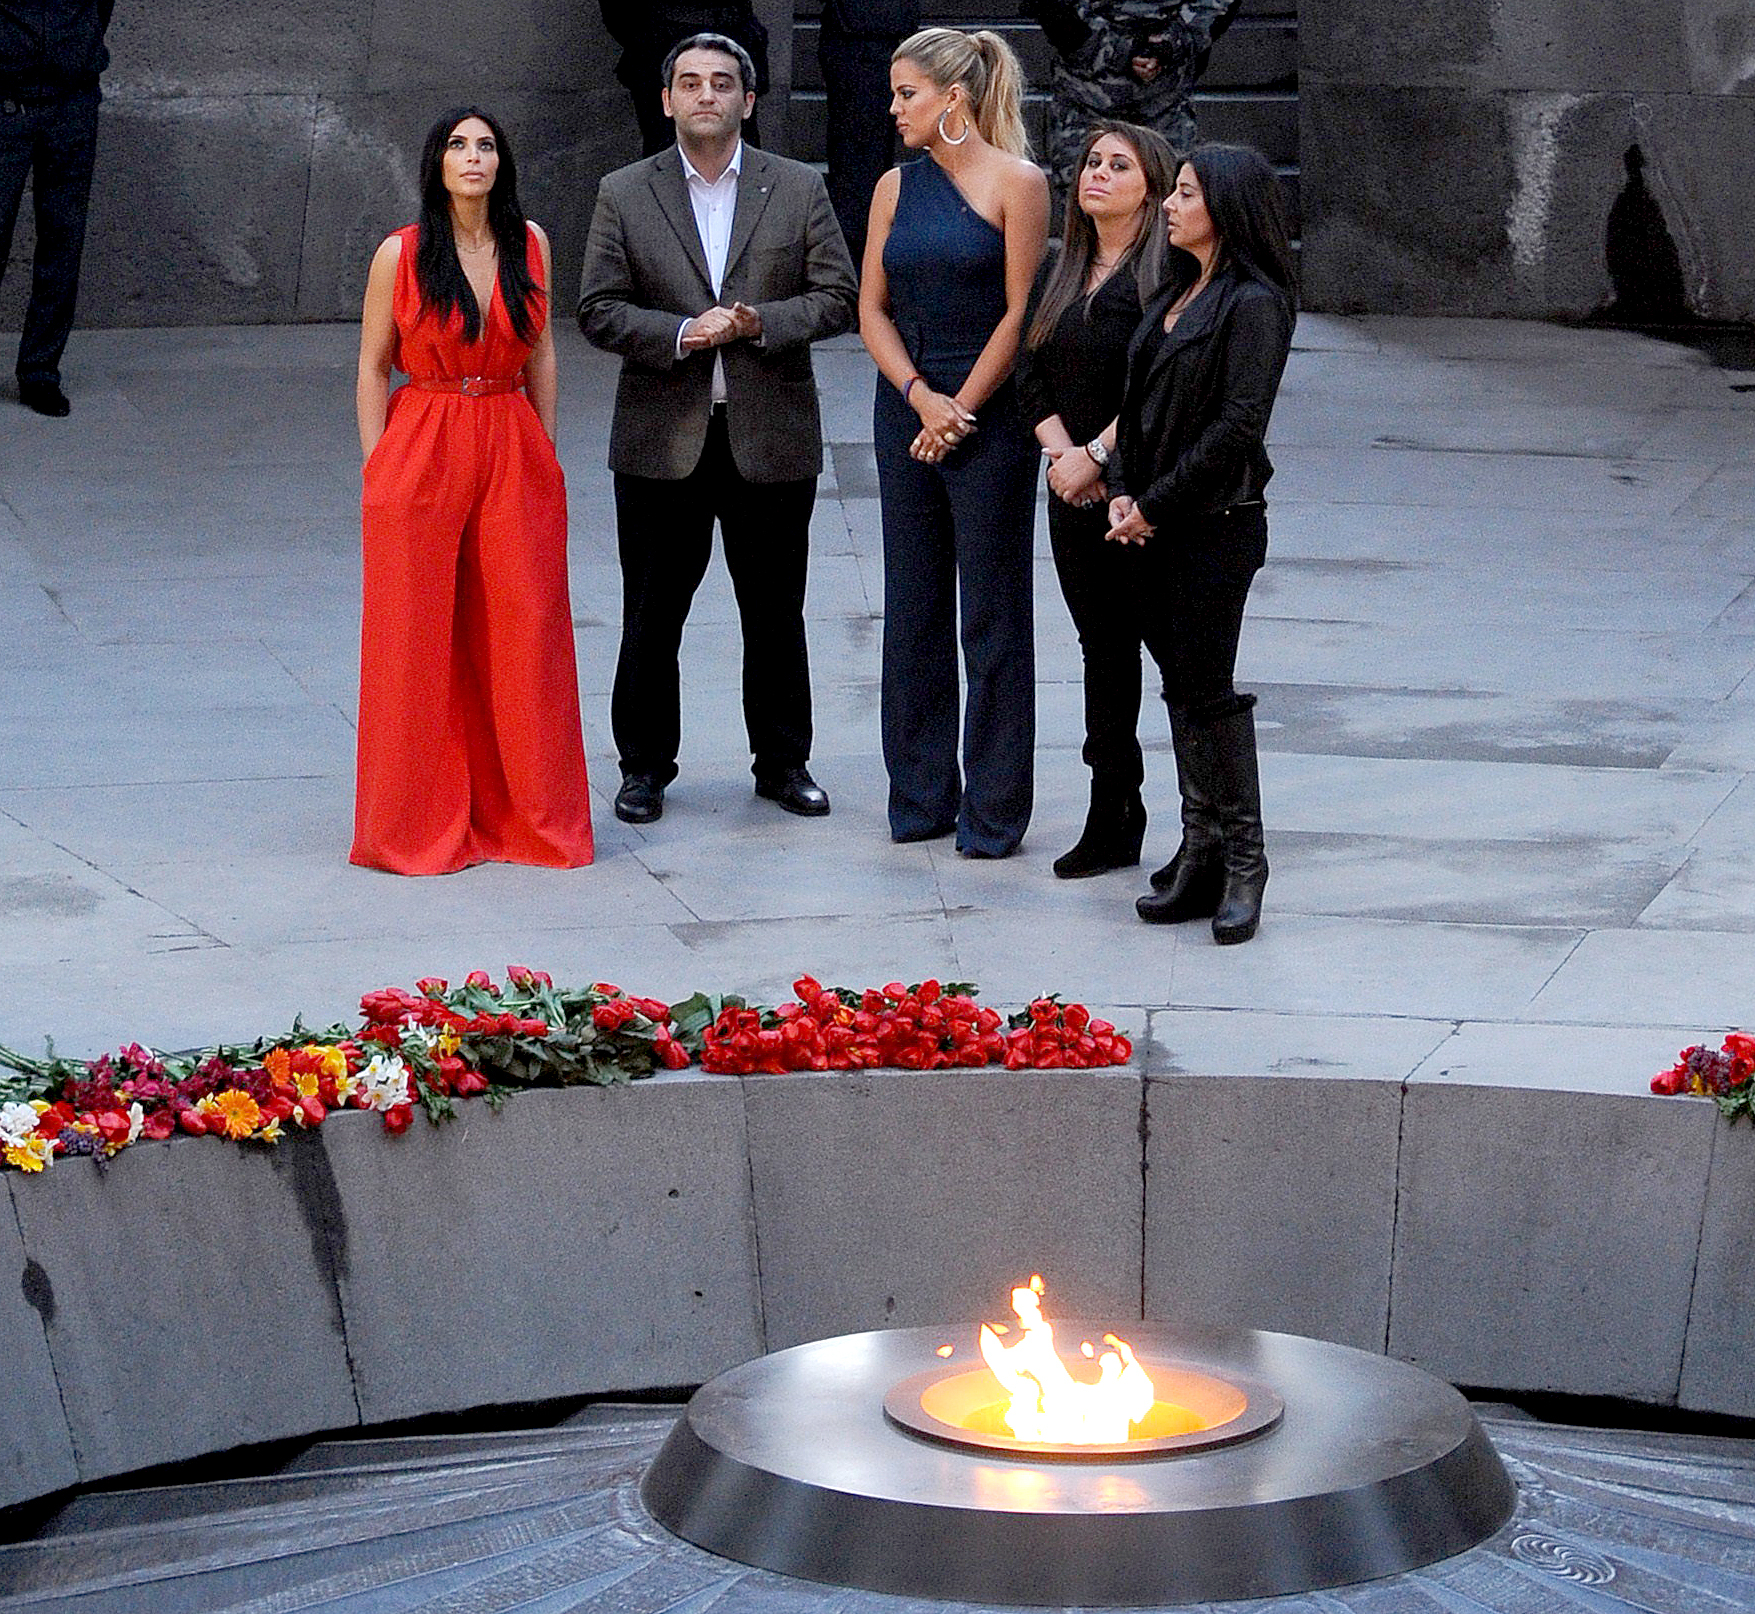 Kim Kardashian and her sister Khloe visit the genocide memorial, which commemorates the 1915 mass killing of Armenians in the Ottoman Empire, in Yerevan on April 10, 2015.